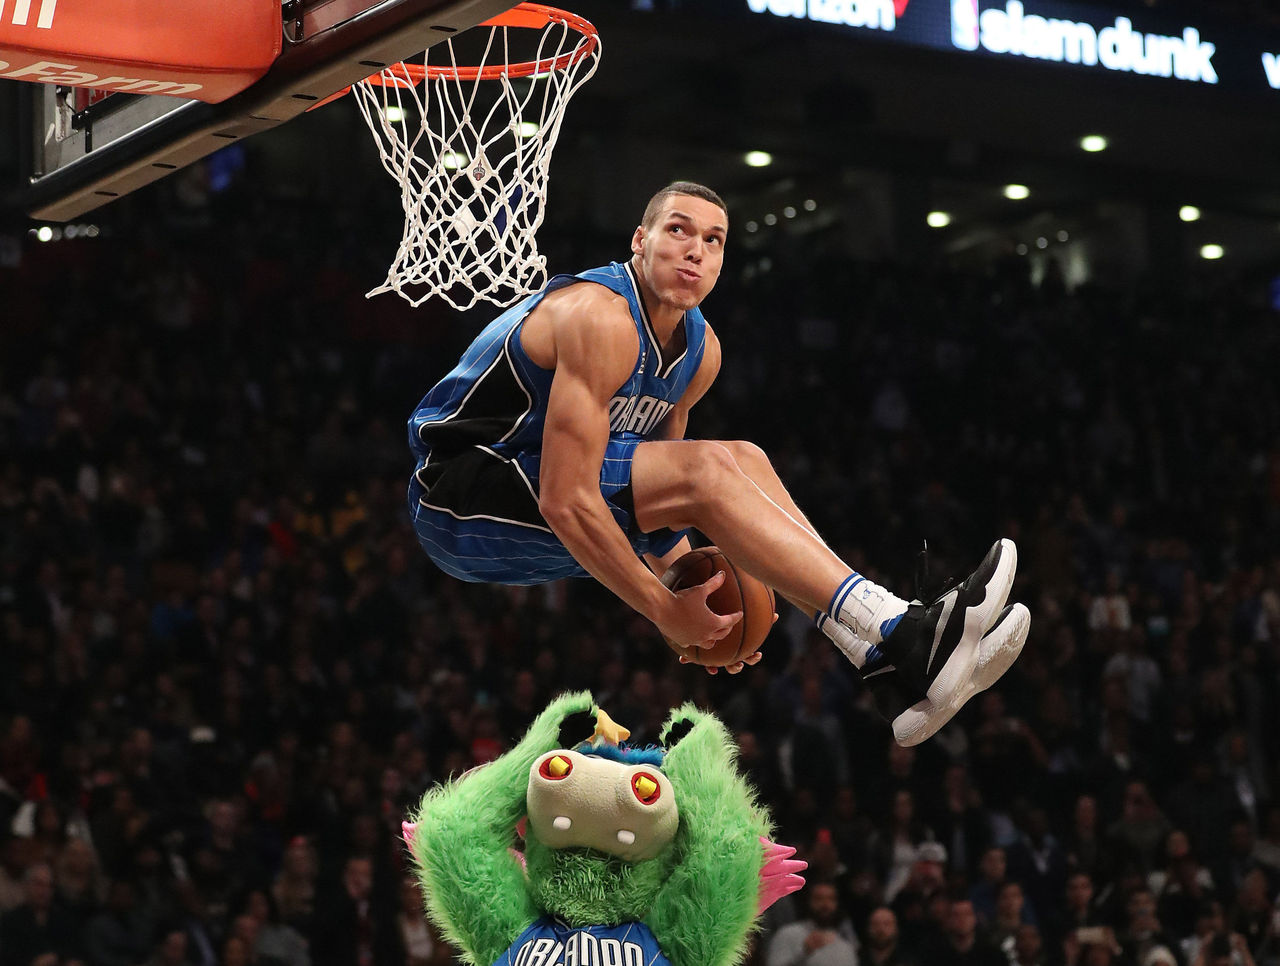 NBA All-Star Slam Dunk Contest - Aaron Gordon